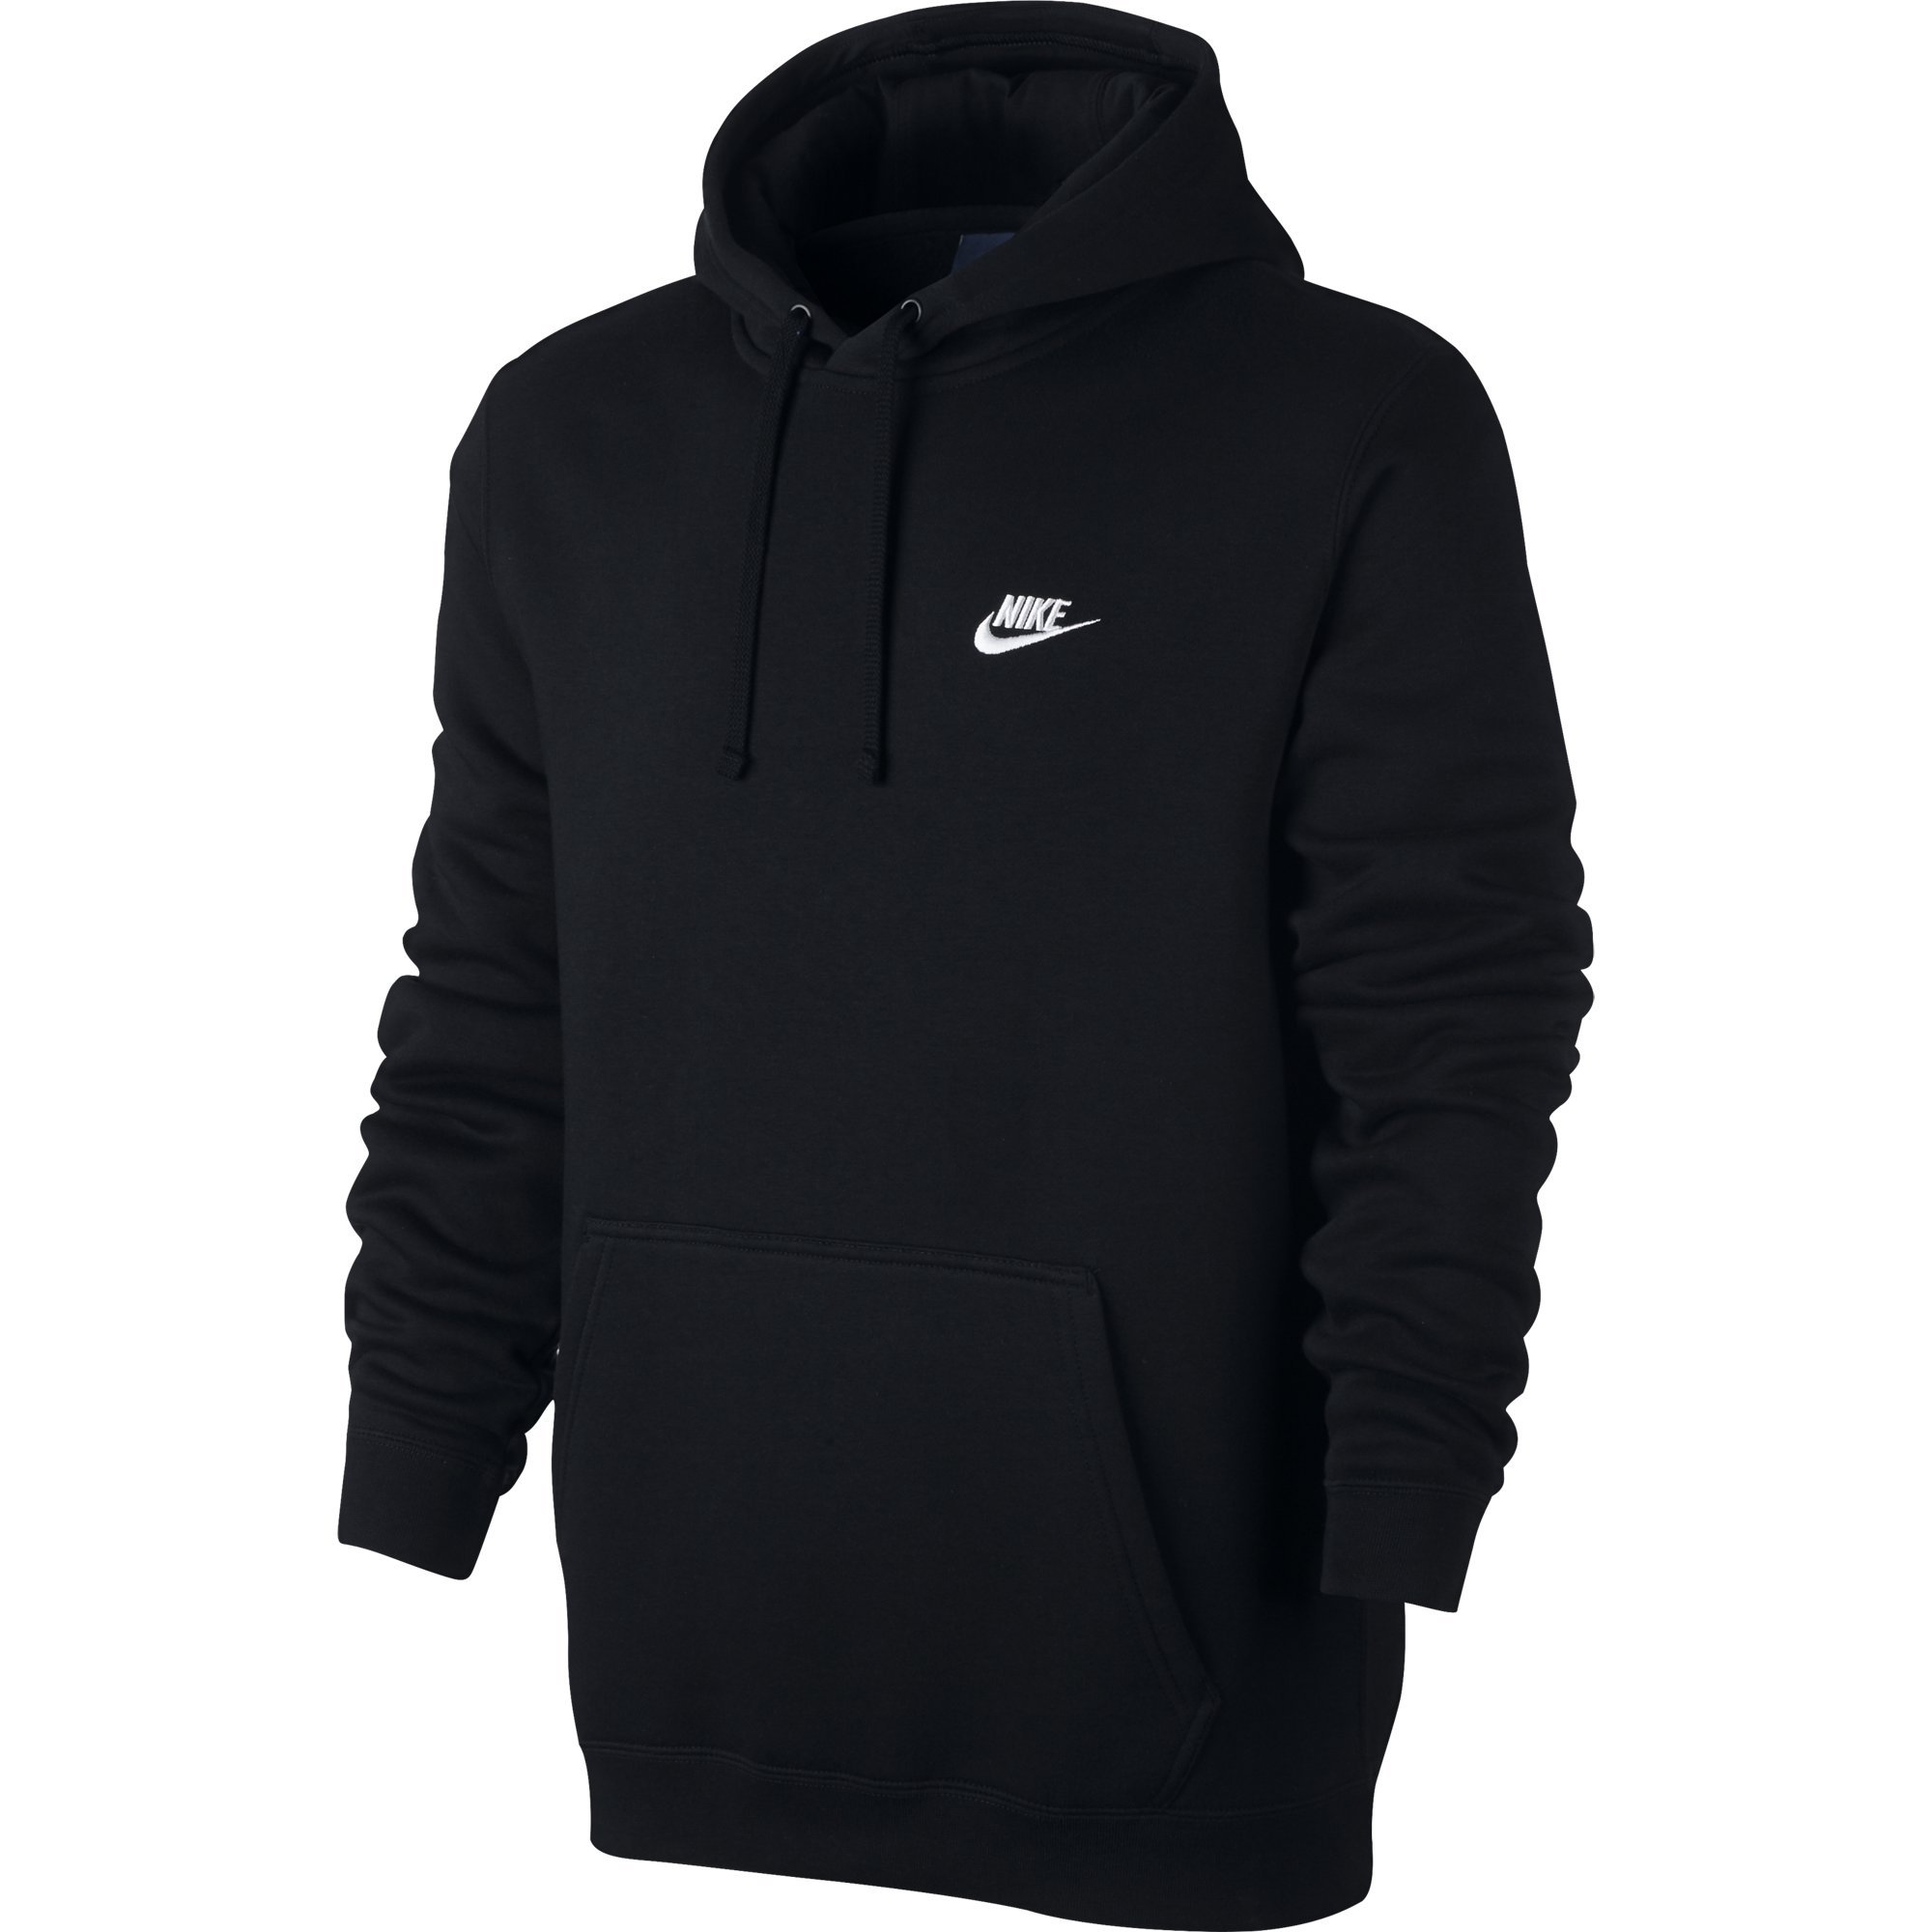 NIKE Sportswear Men's Pullover Club Hoodie, Black/Black/White, Large